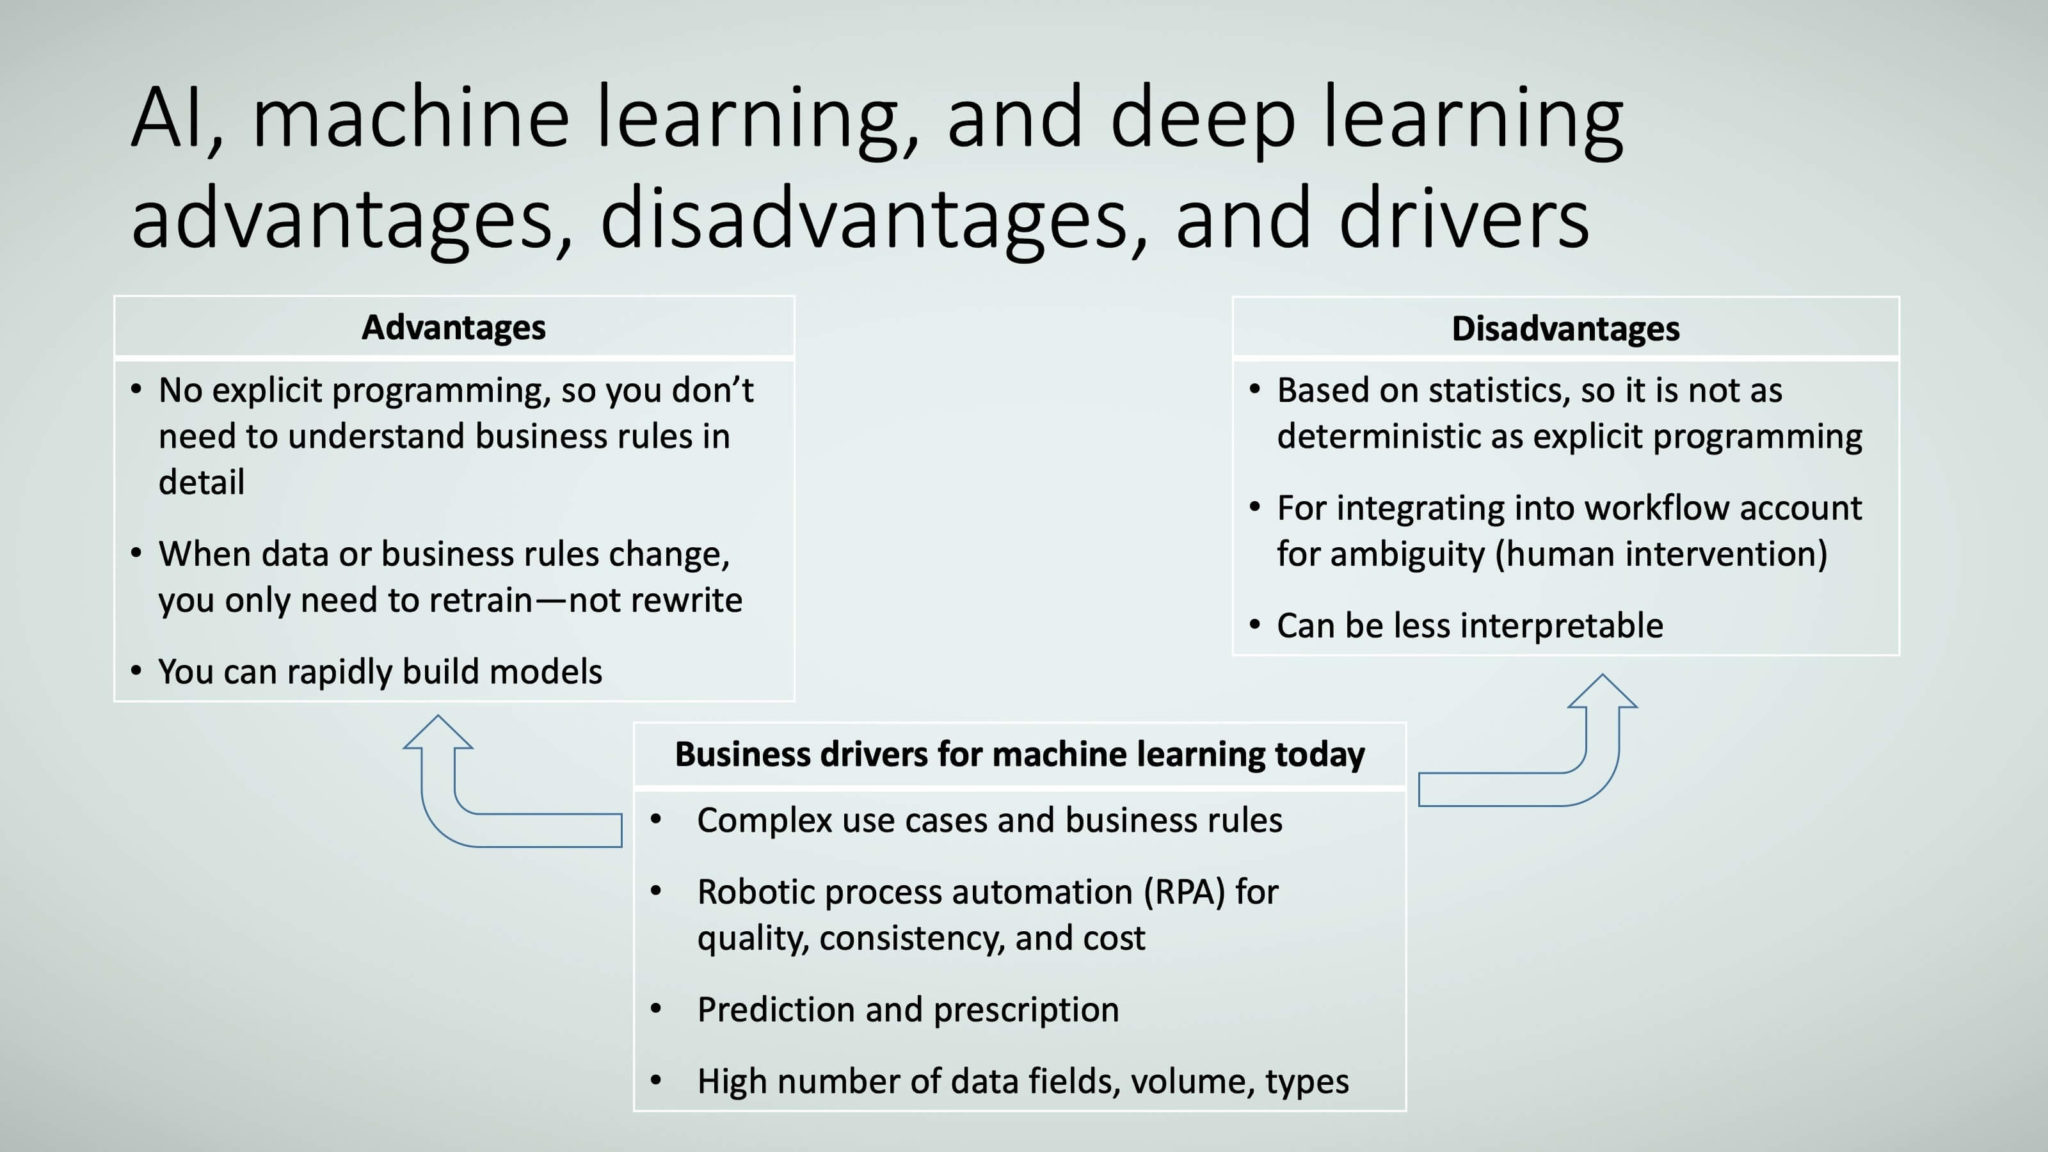 AI machine learning and deep learning: Everything you need to know